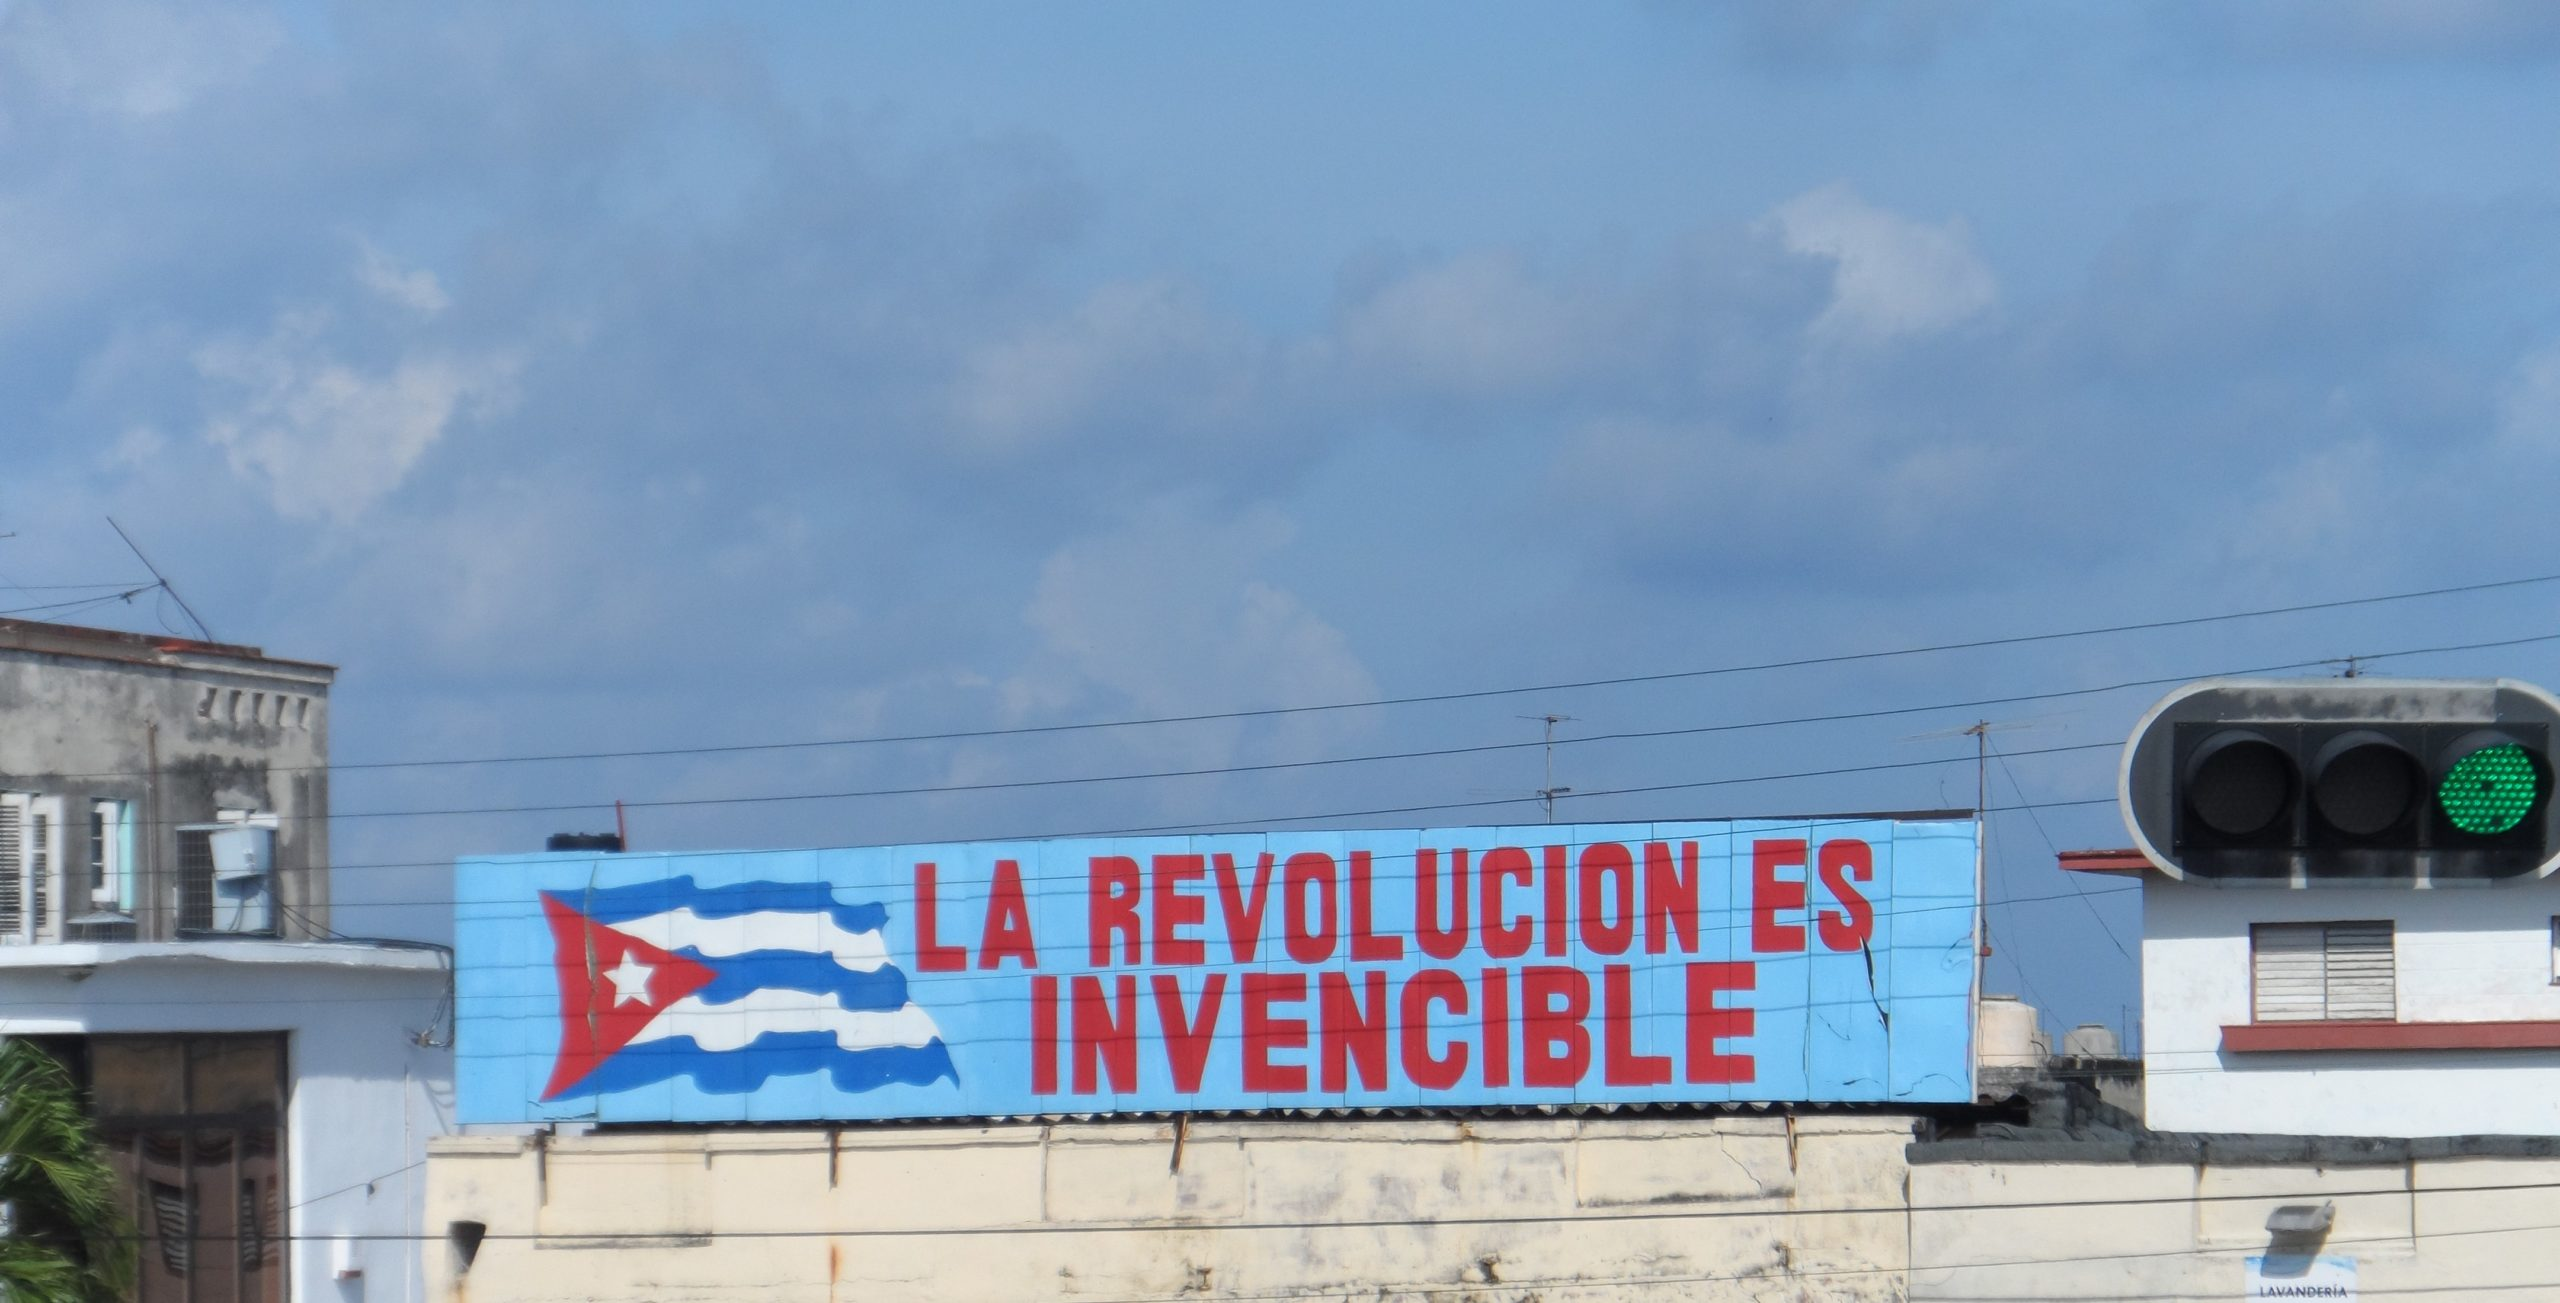 Sign in Cuba with flag